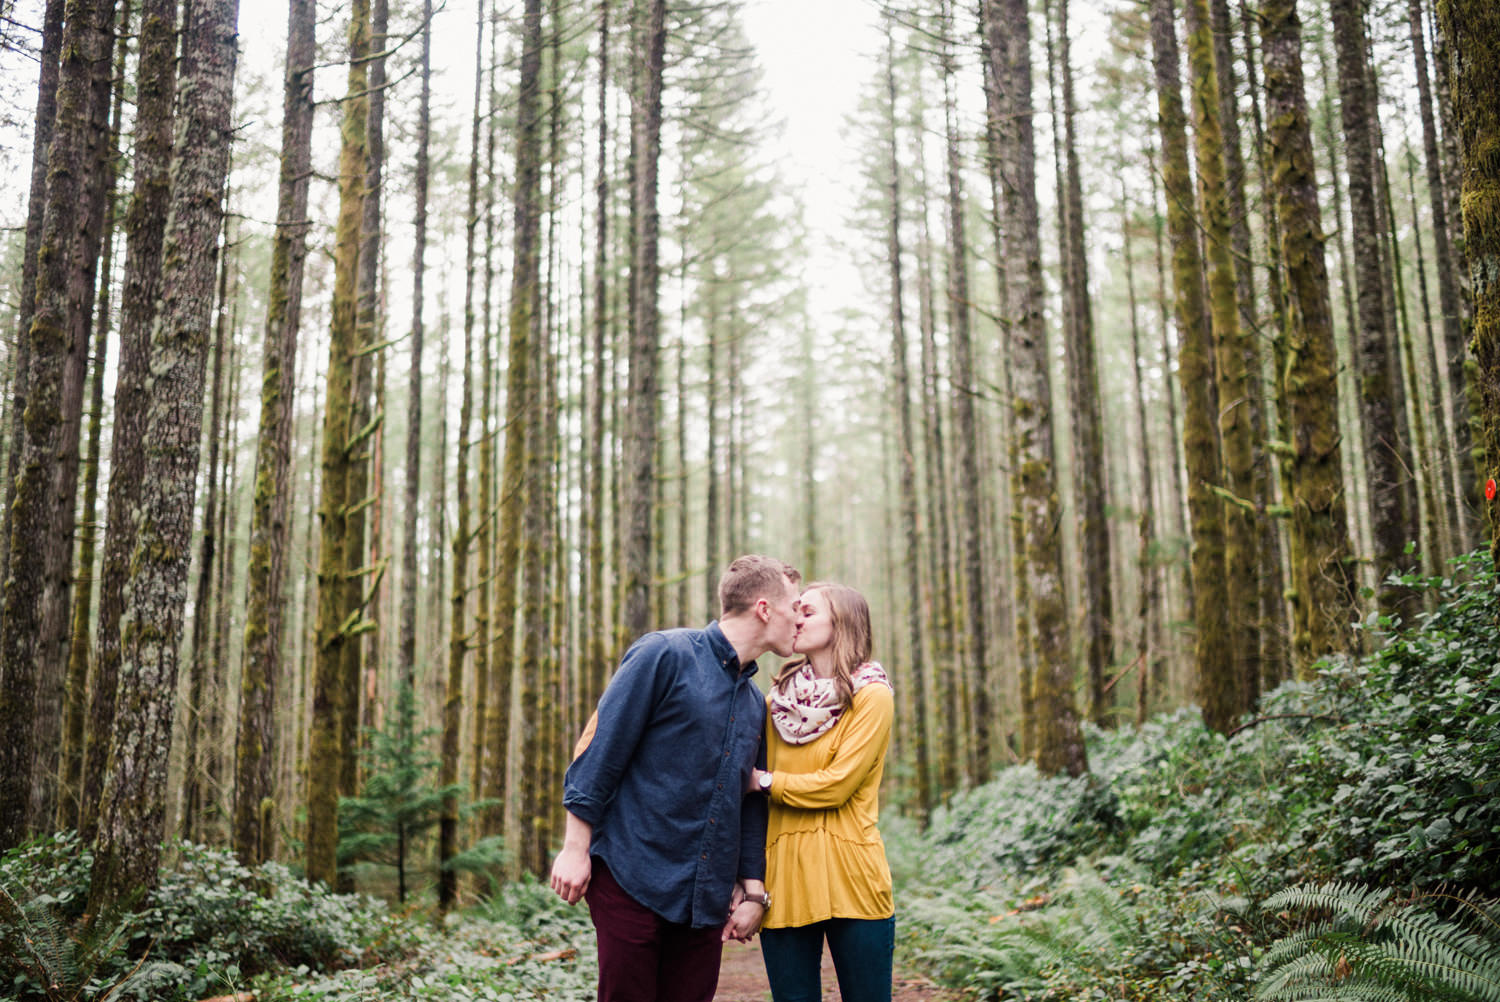 019-snoqualmie-mountain-engagement-session-seattle-film-wedding-photographer-ryan-flynn.jpg